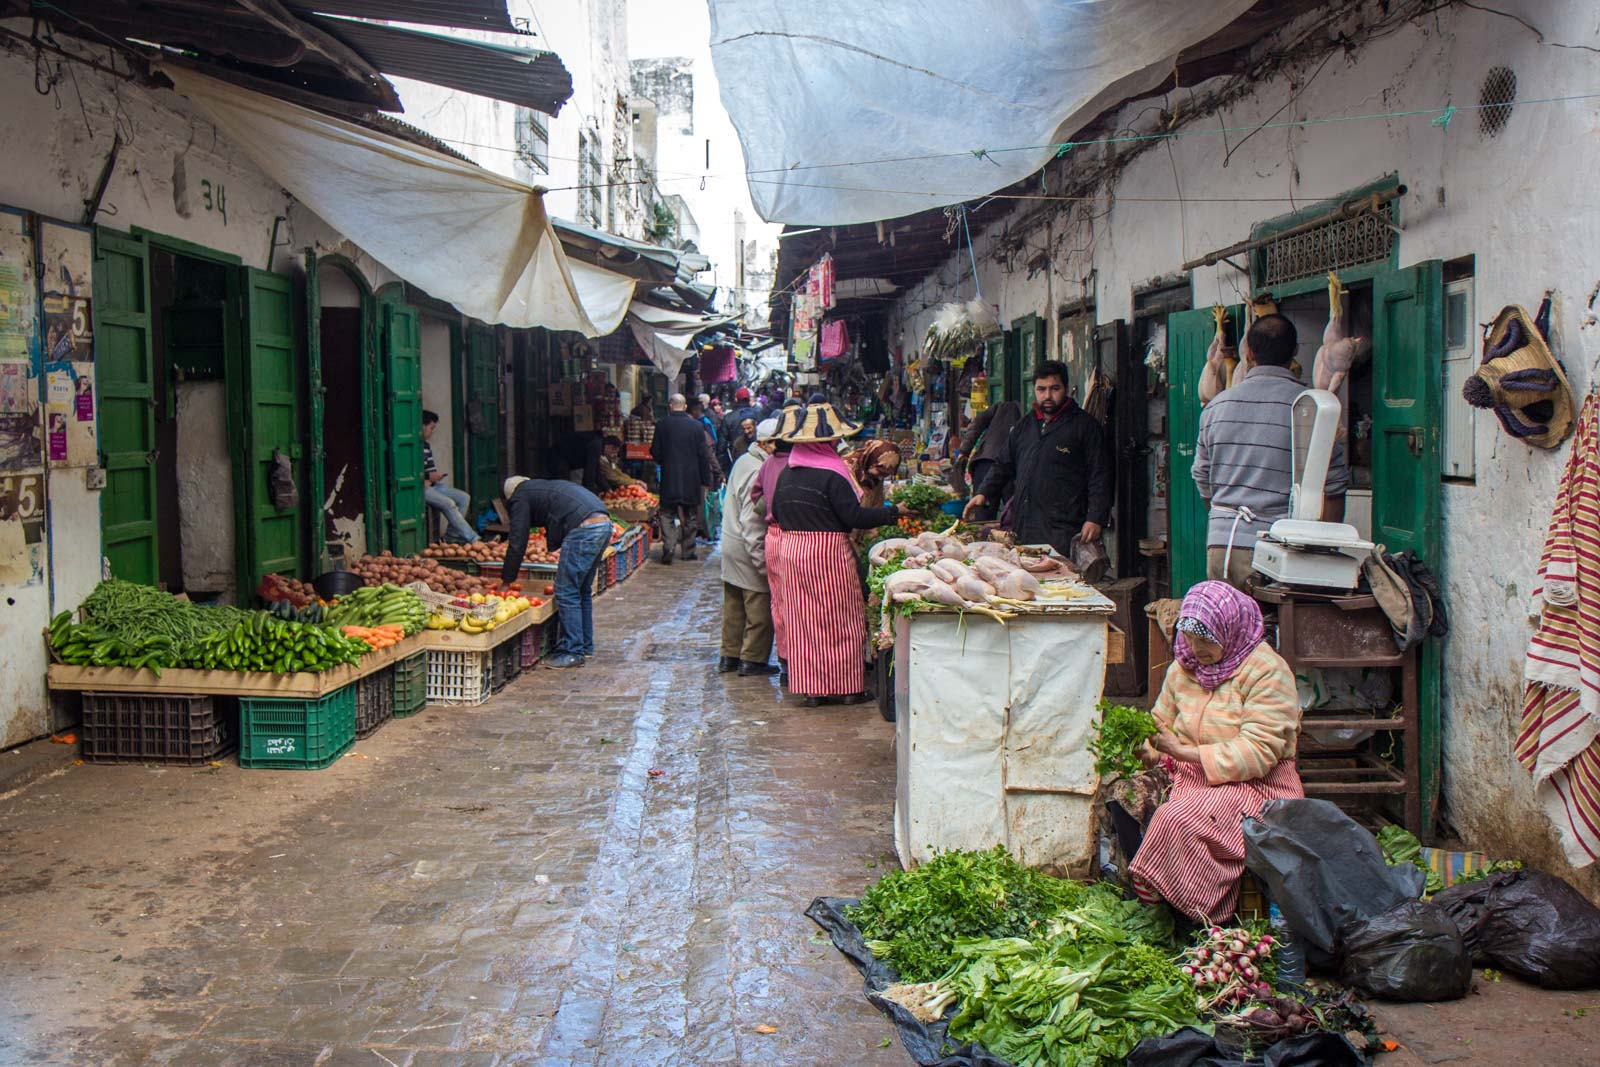 Local market in Tetouan, Morocco